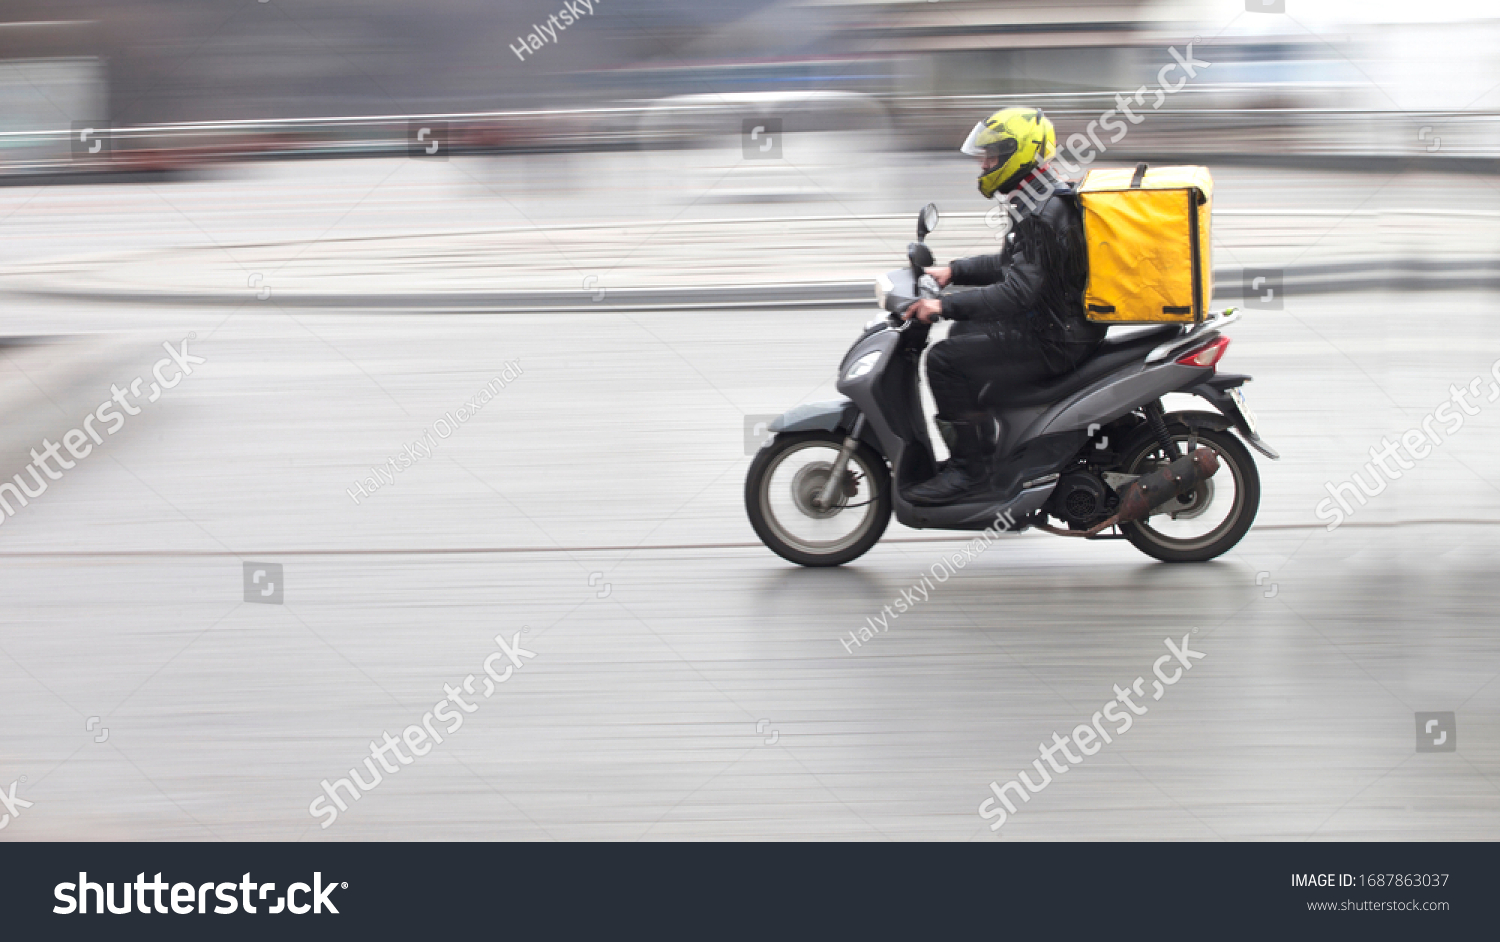 Couriers carry out orders for the delivery of goods #1687863037